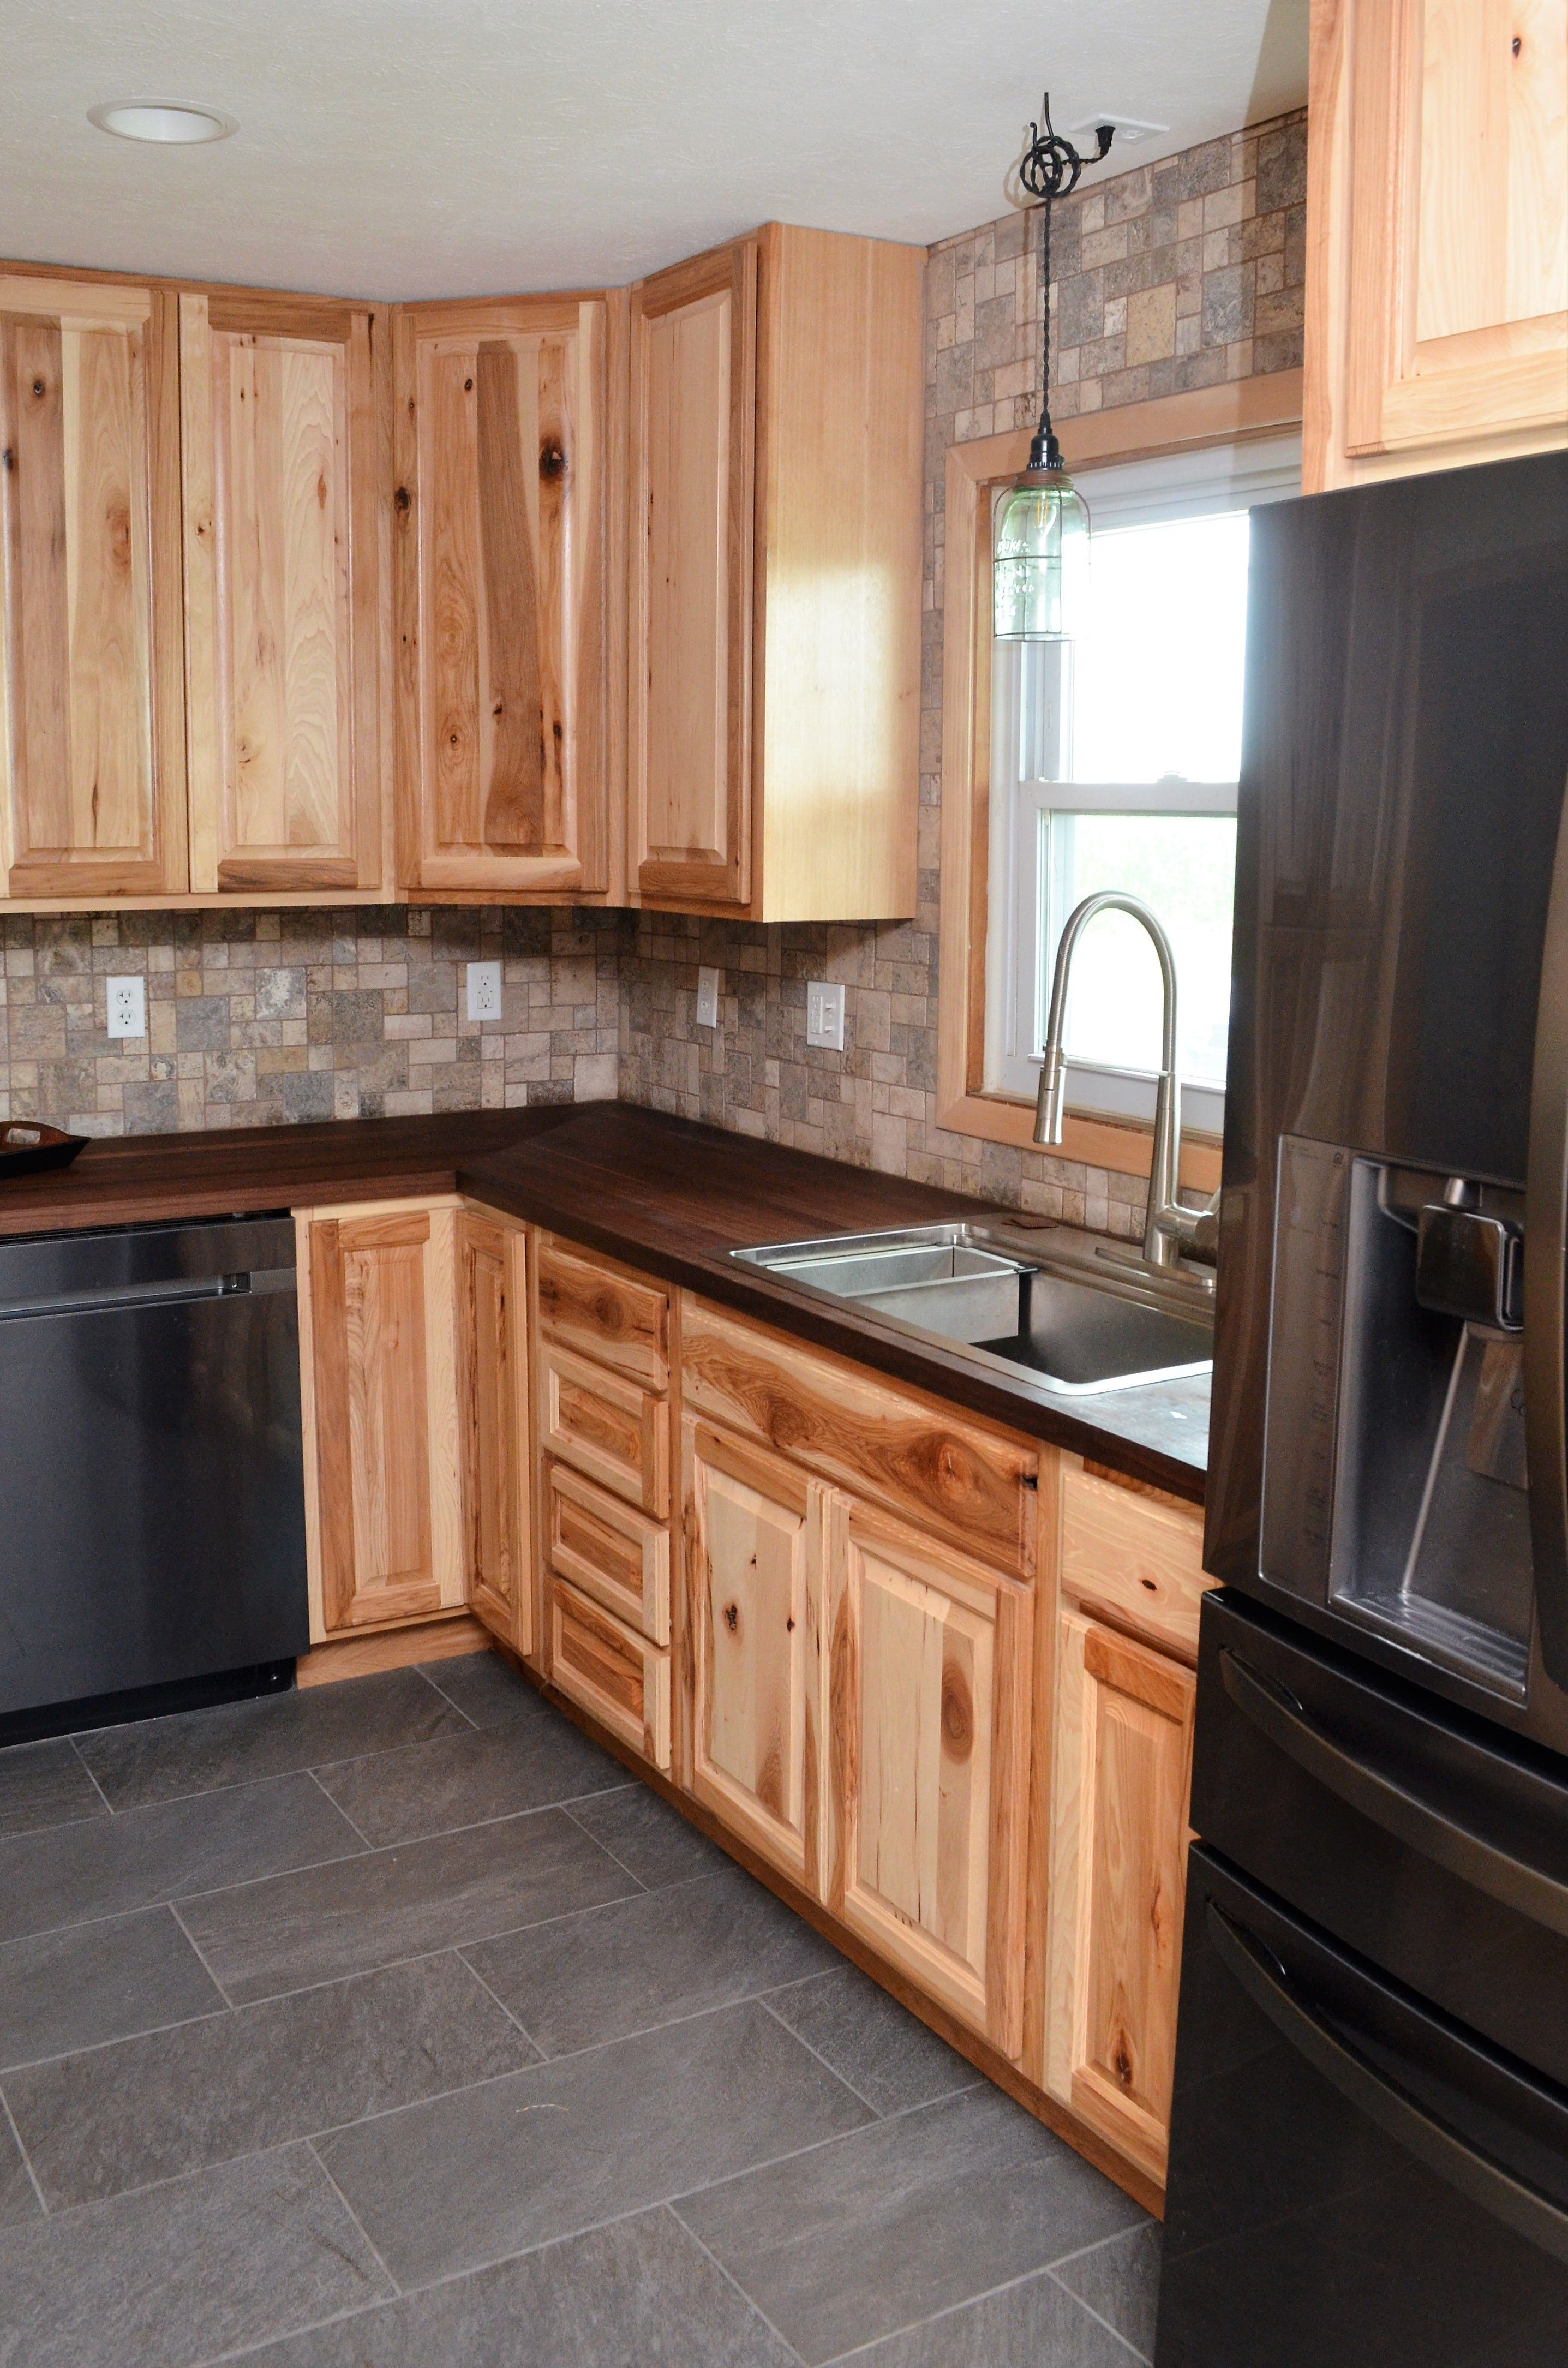 Pecan Wood Kitchen Cabinets 2020 In 2020 Beautiful Kitchen Cabinets Hickory Kitchen New Kitchen Cabinets